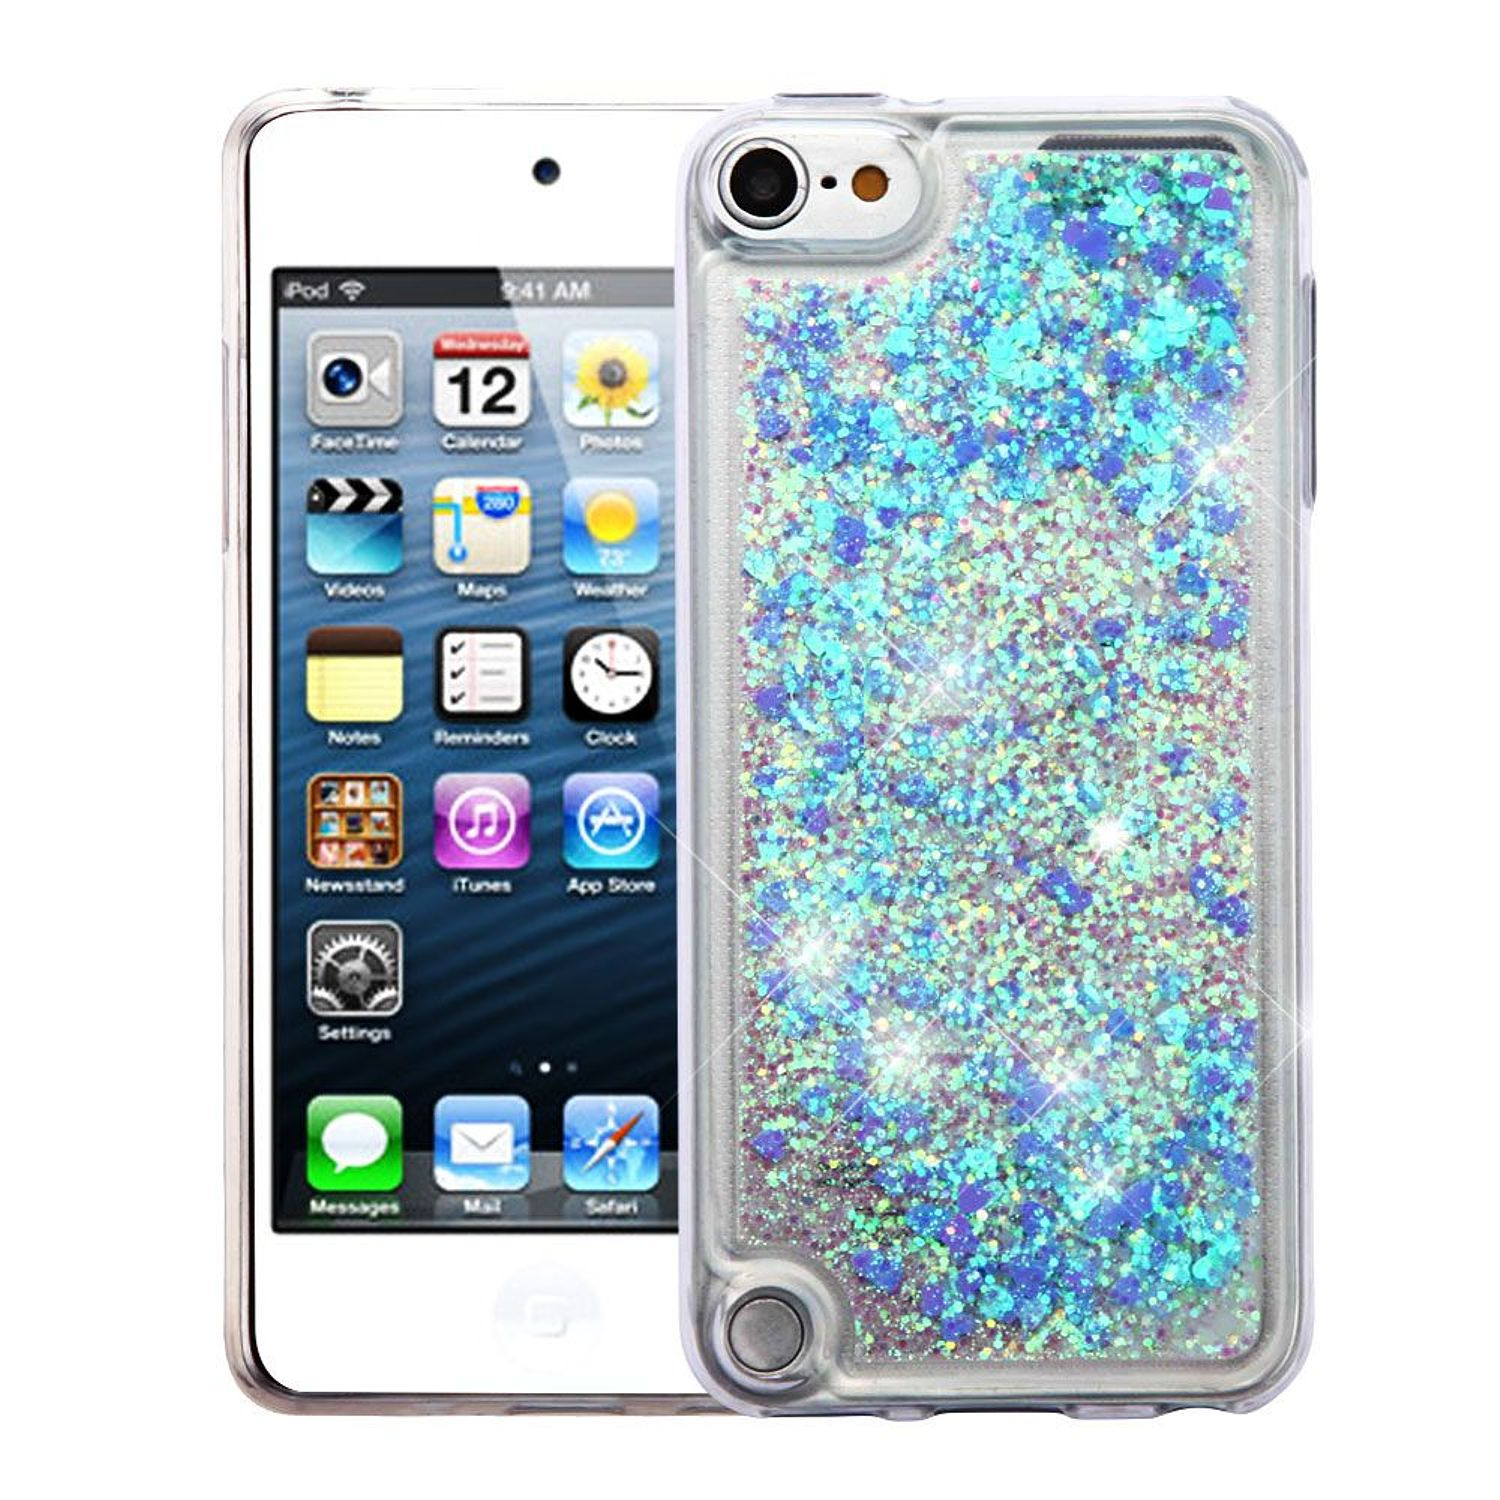 iPod Touch 6th Generation Case, iPod Touch 5th Generation Case, by Insten Quicksand Glitter Hard Plastic/Soft TPU Rubber Case Cover For Apple iPod Touch 5th Gen/6th Gen, Blue